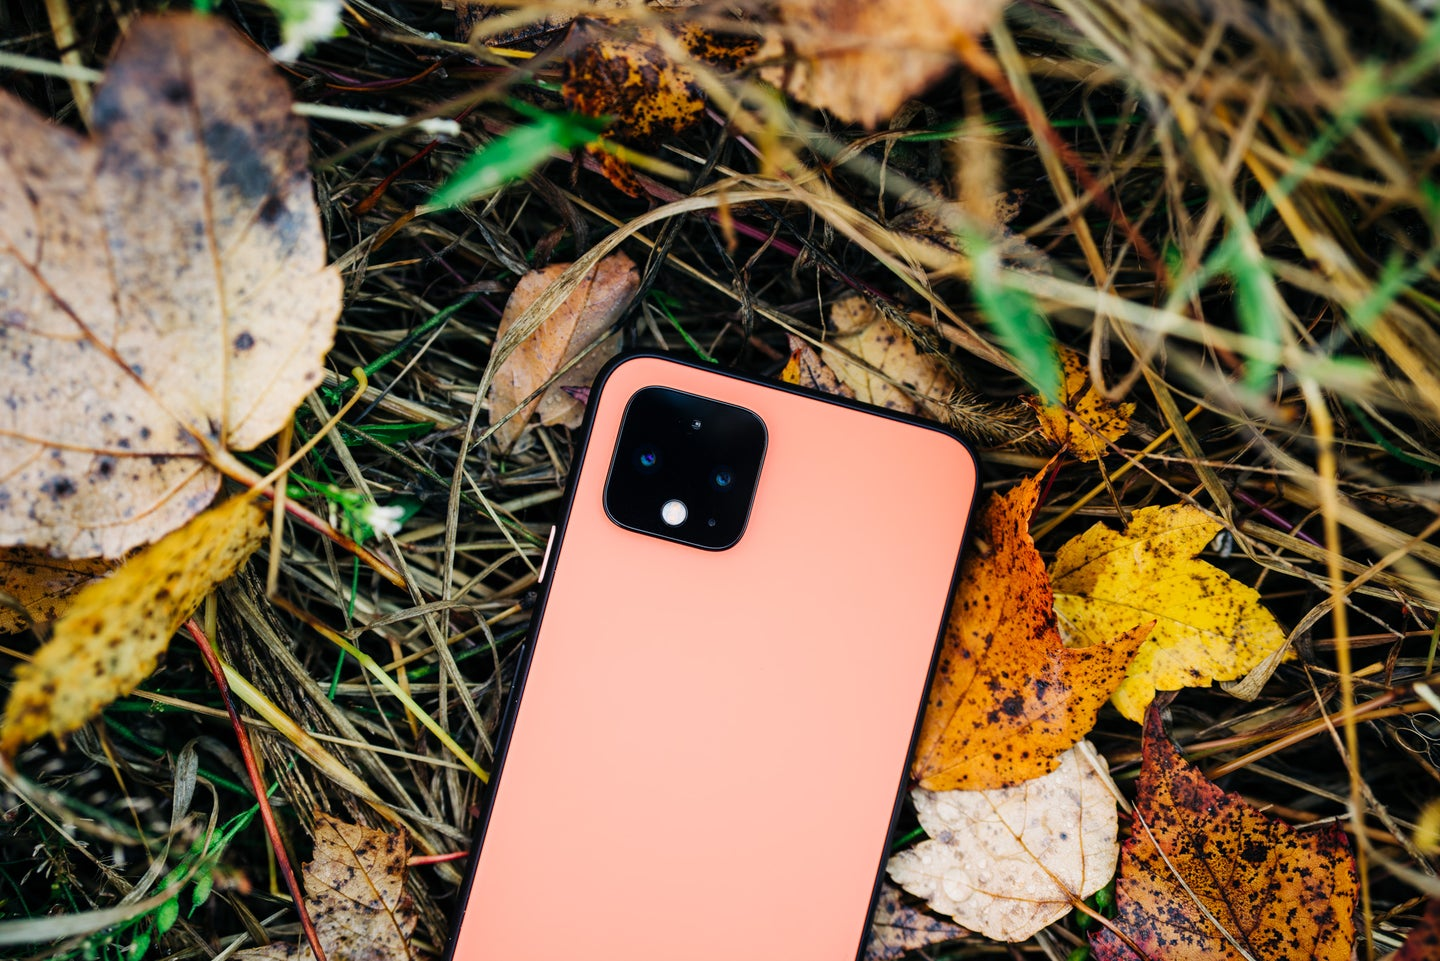 Google's Pixel 4 has a square camera array like the iPhone 11 Pro.